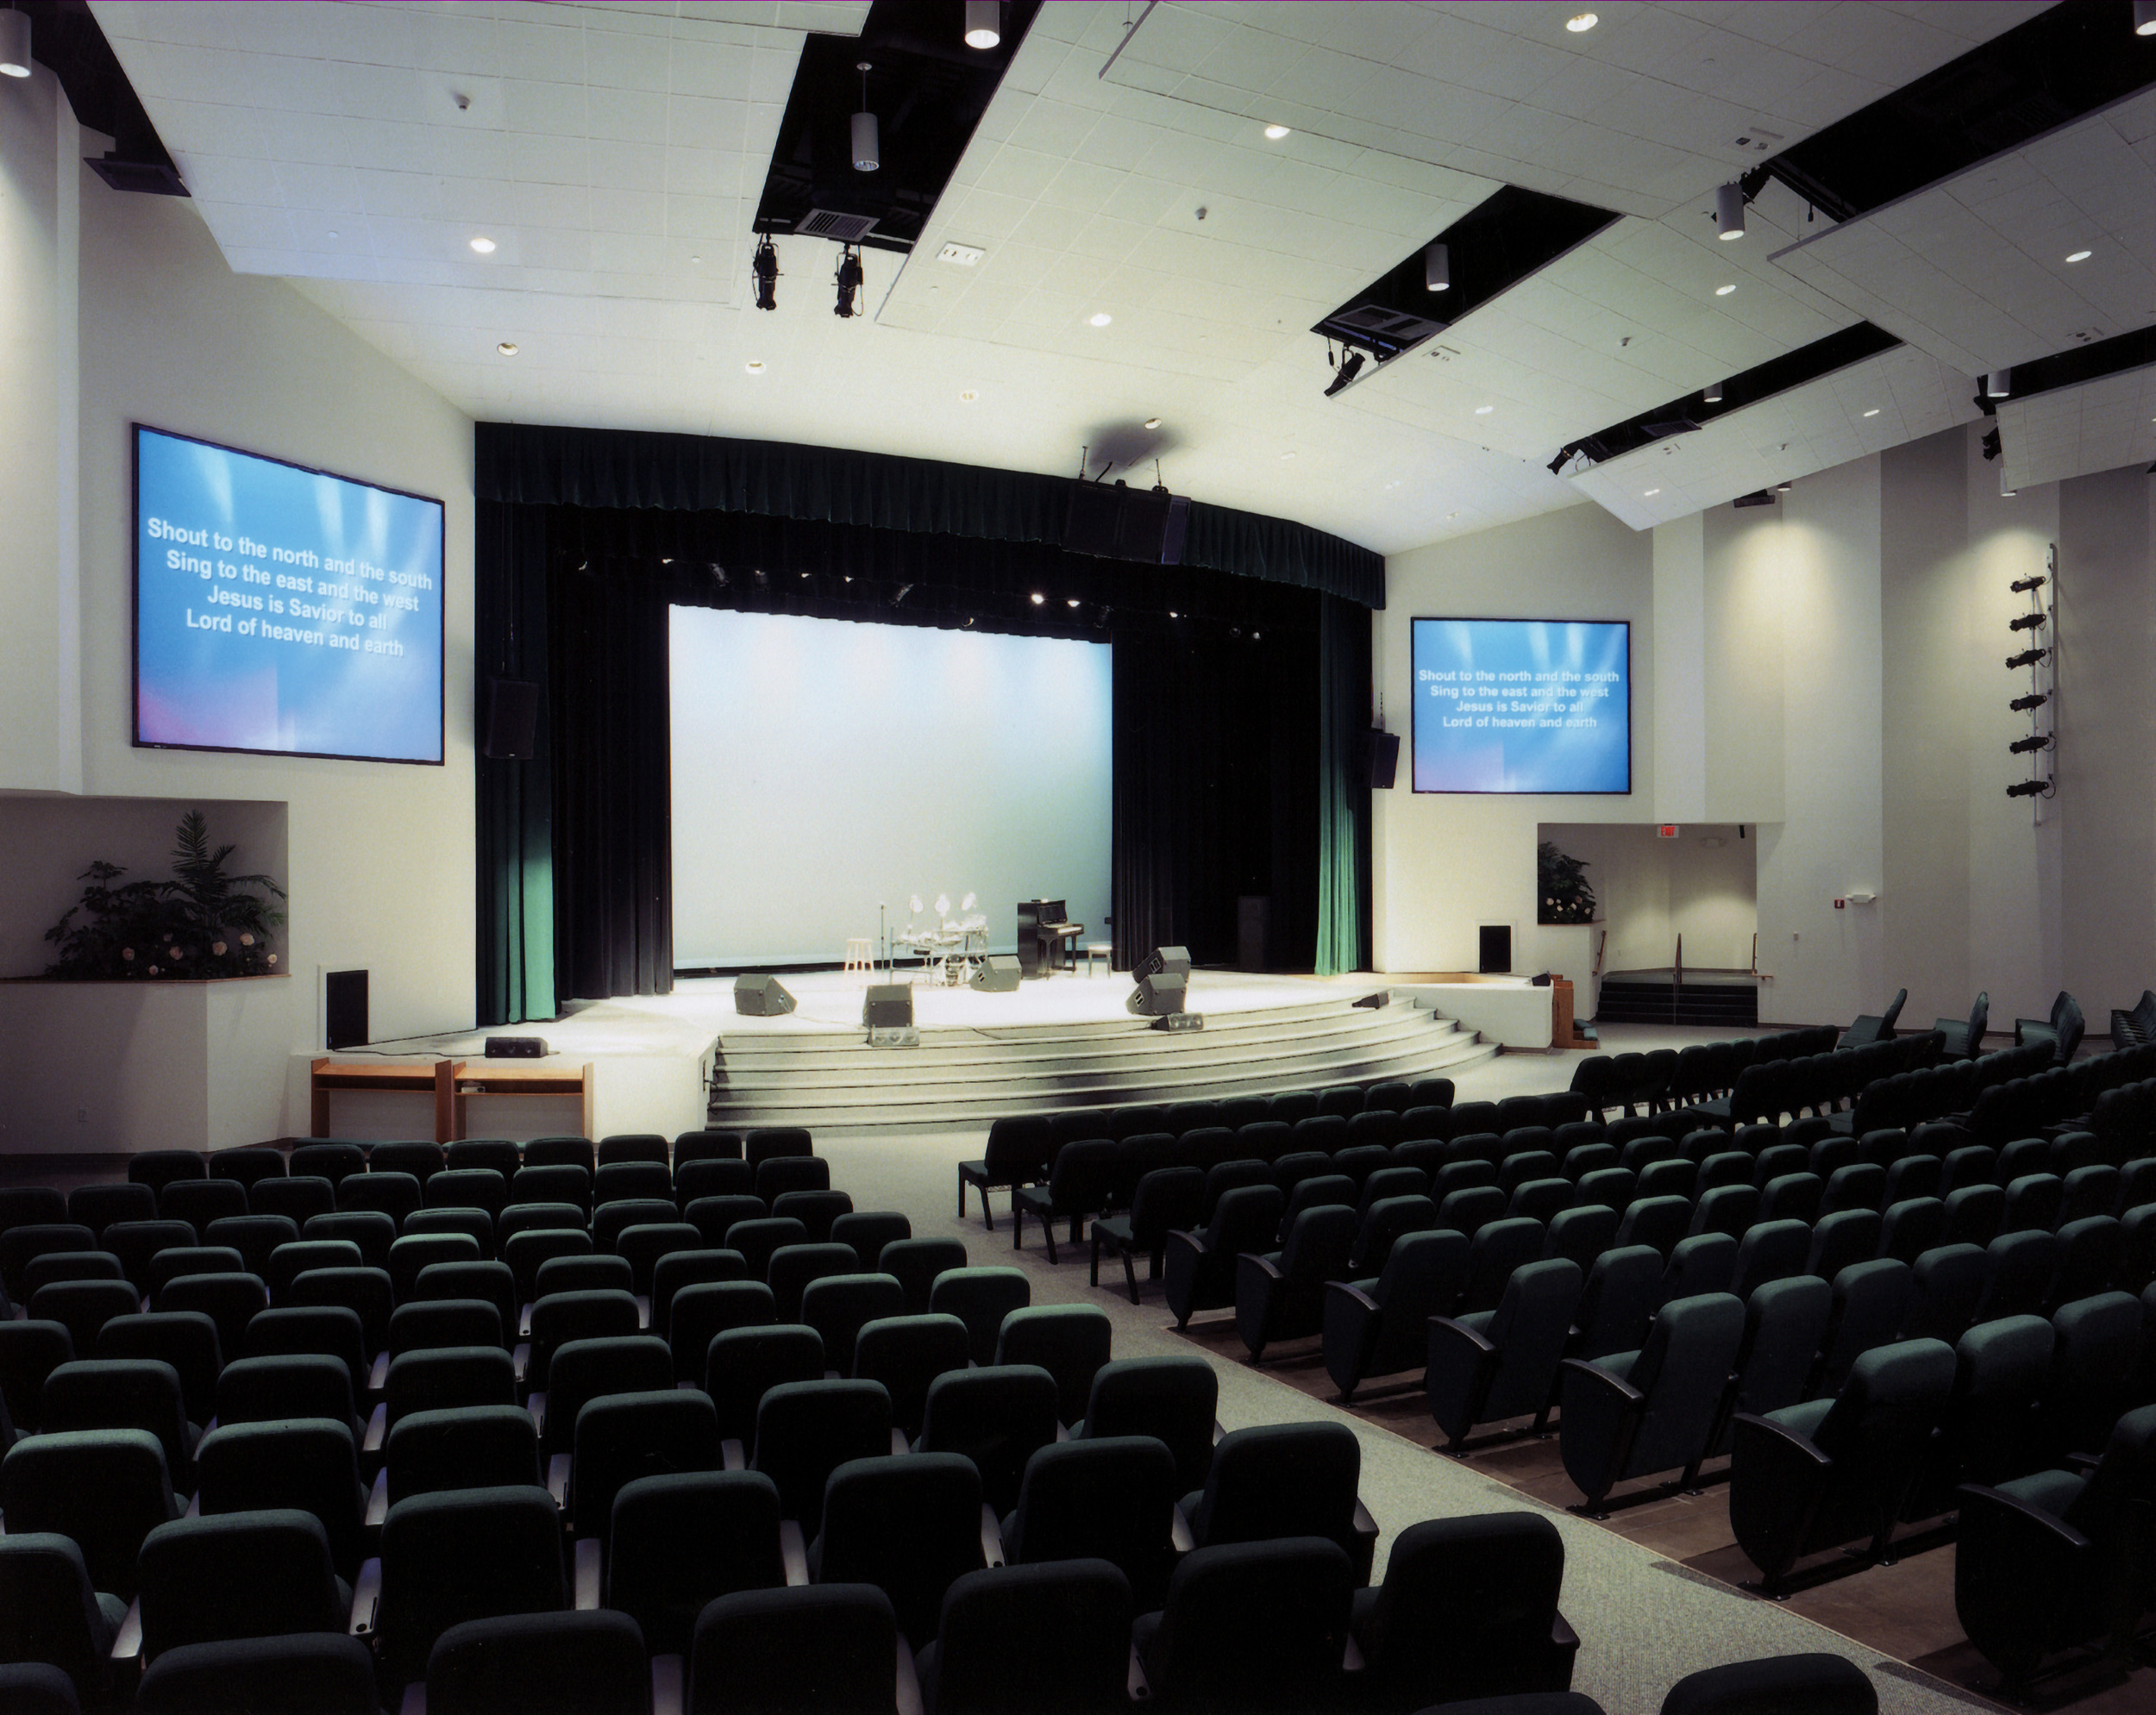 This expandable worship center designed for walnut hill community church inbethel, CT. has the unique feature of a 3-part floor. the front most section is flat to accommodate round tables for dinner-theater productions, while the central band os seats is on a sloped floor, and the expansion section (Removable back wall) is amphitheater seating. Total capacity 1,400 seats.